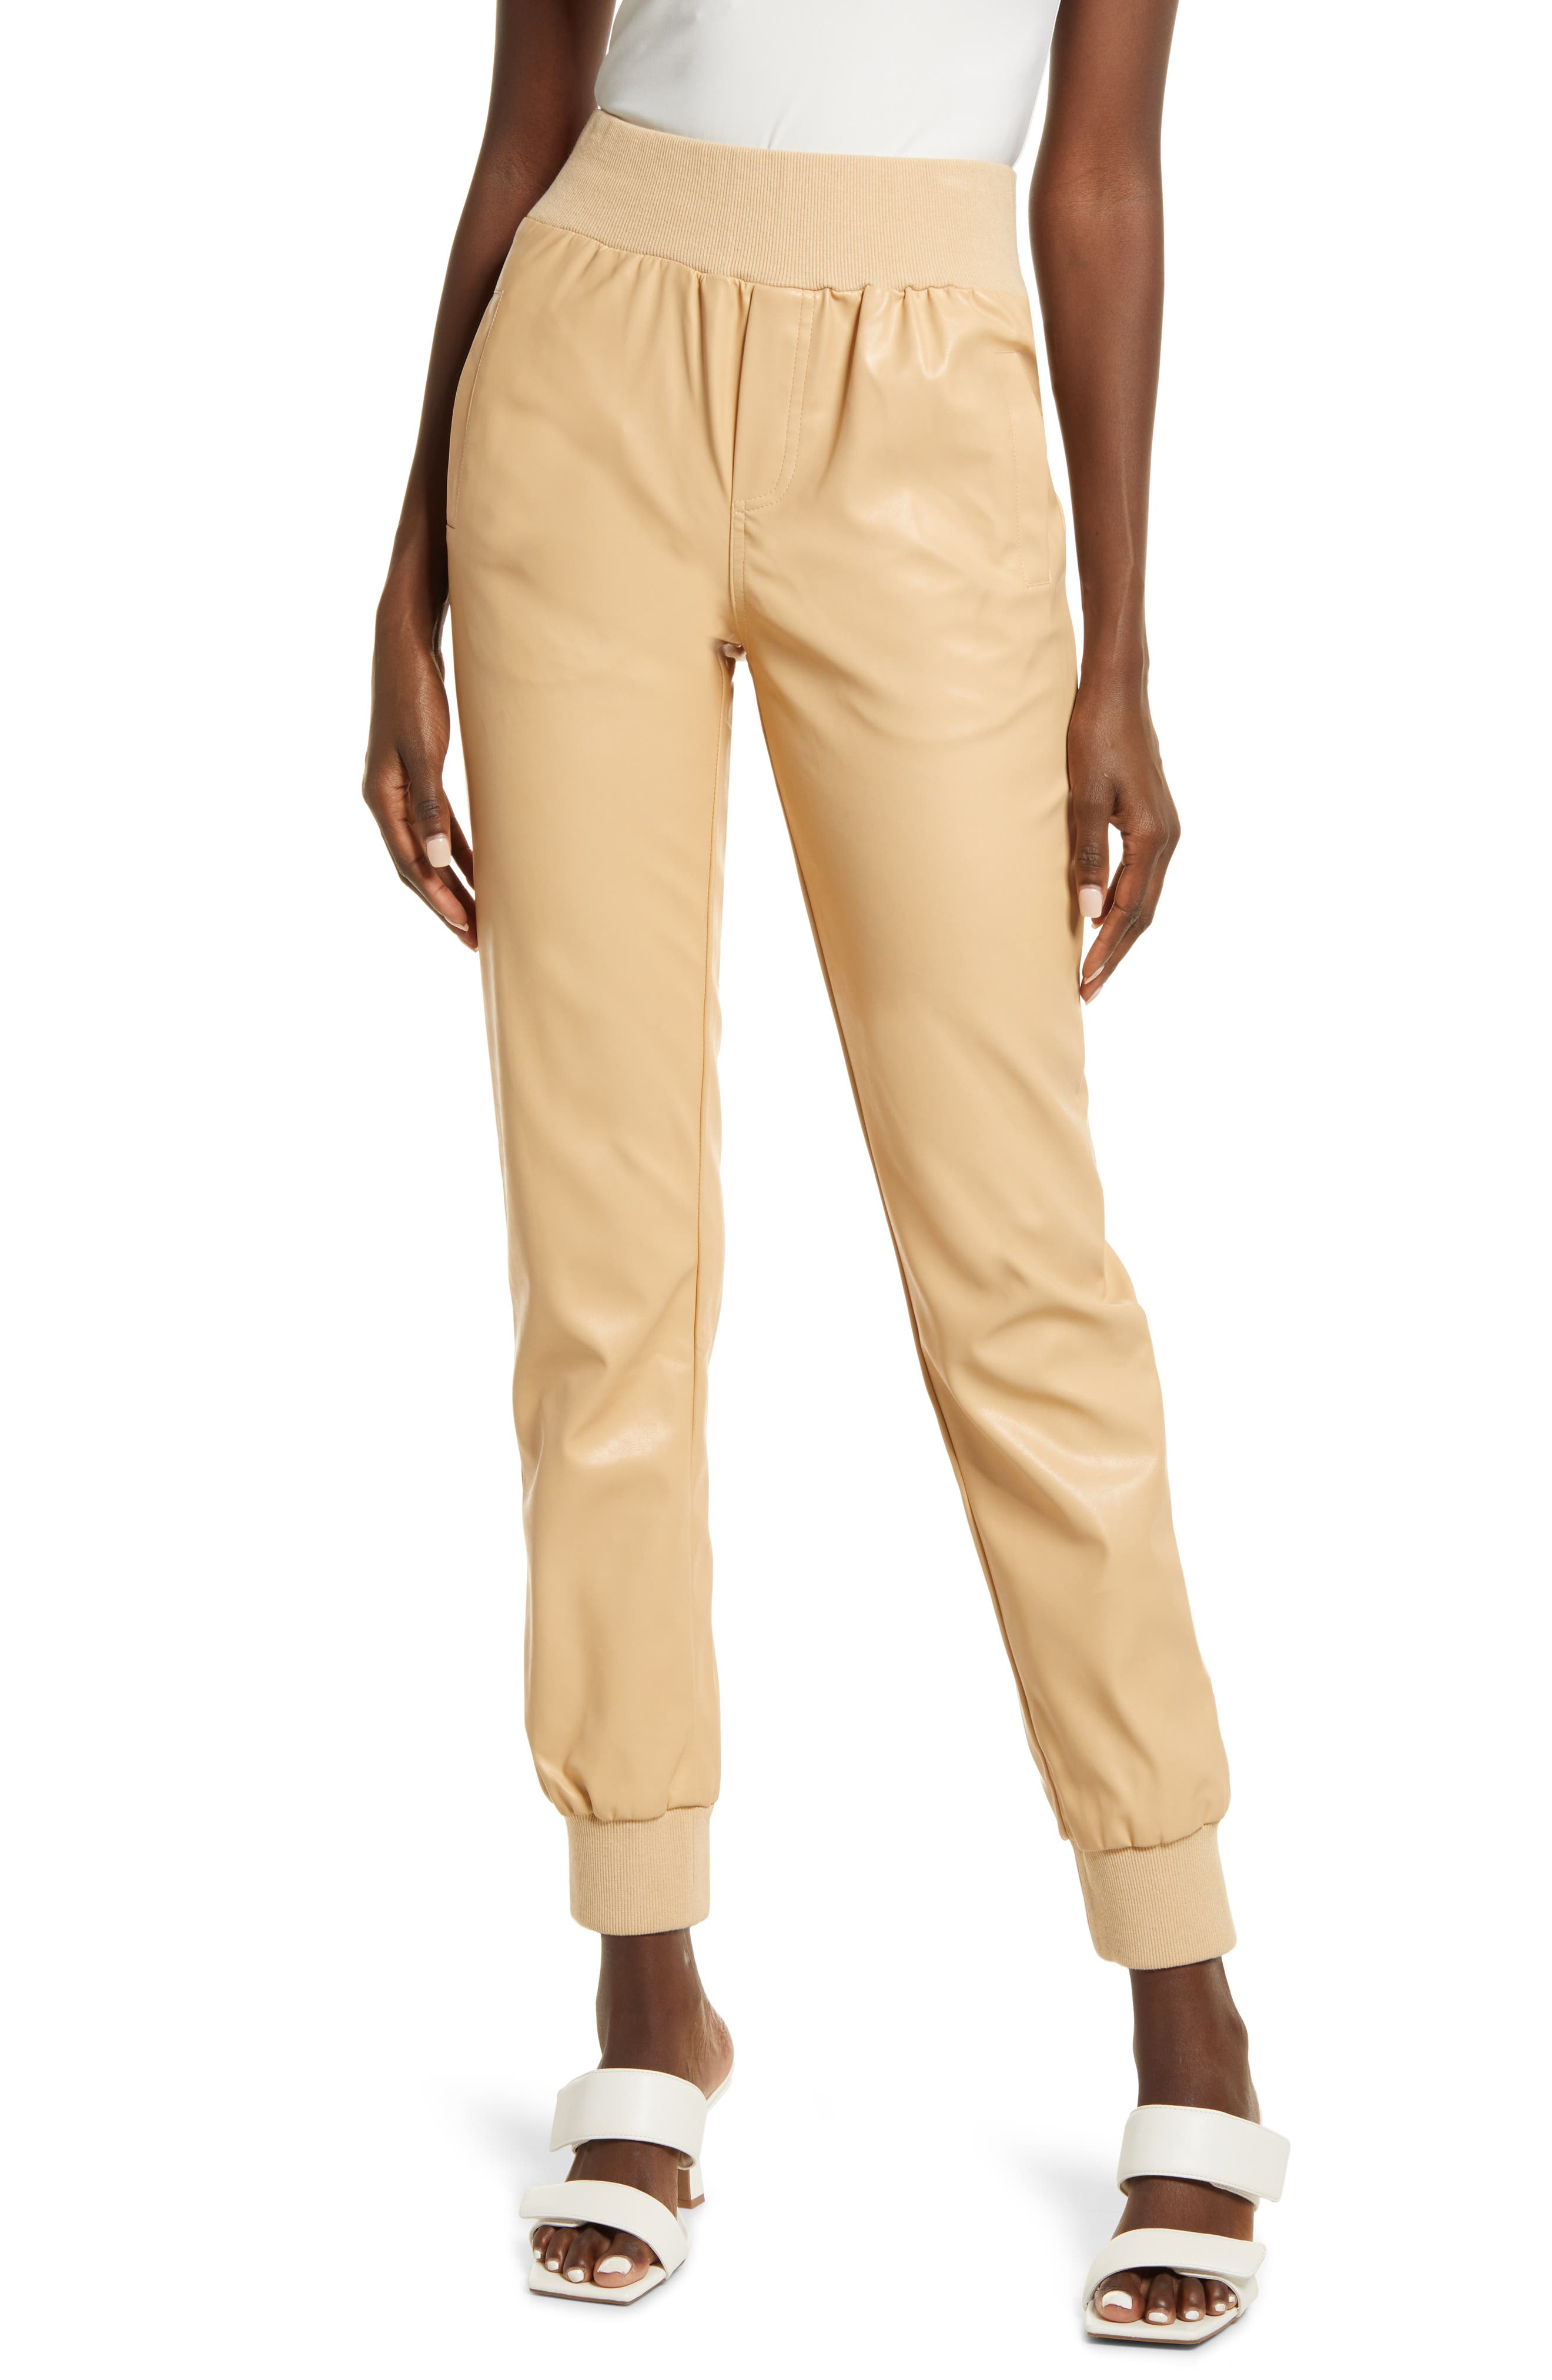 Women's Kendall + Kylie Faux Leather Joggers